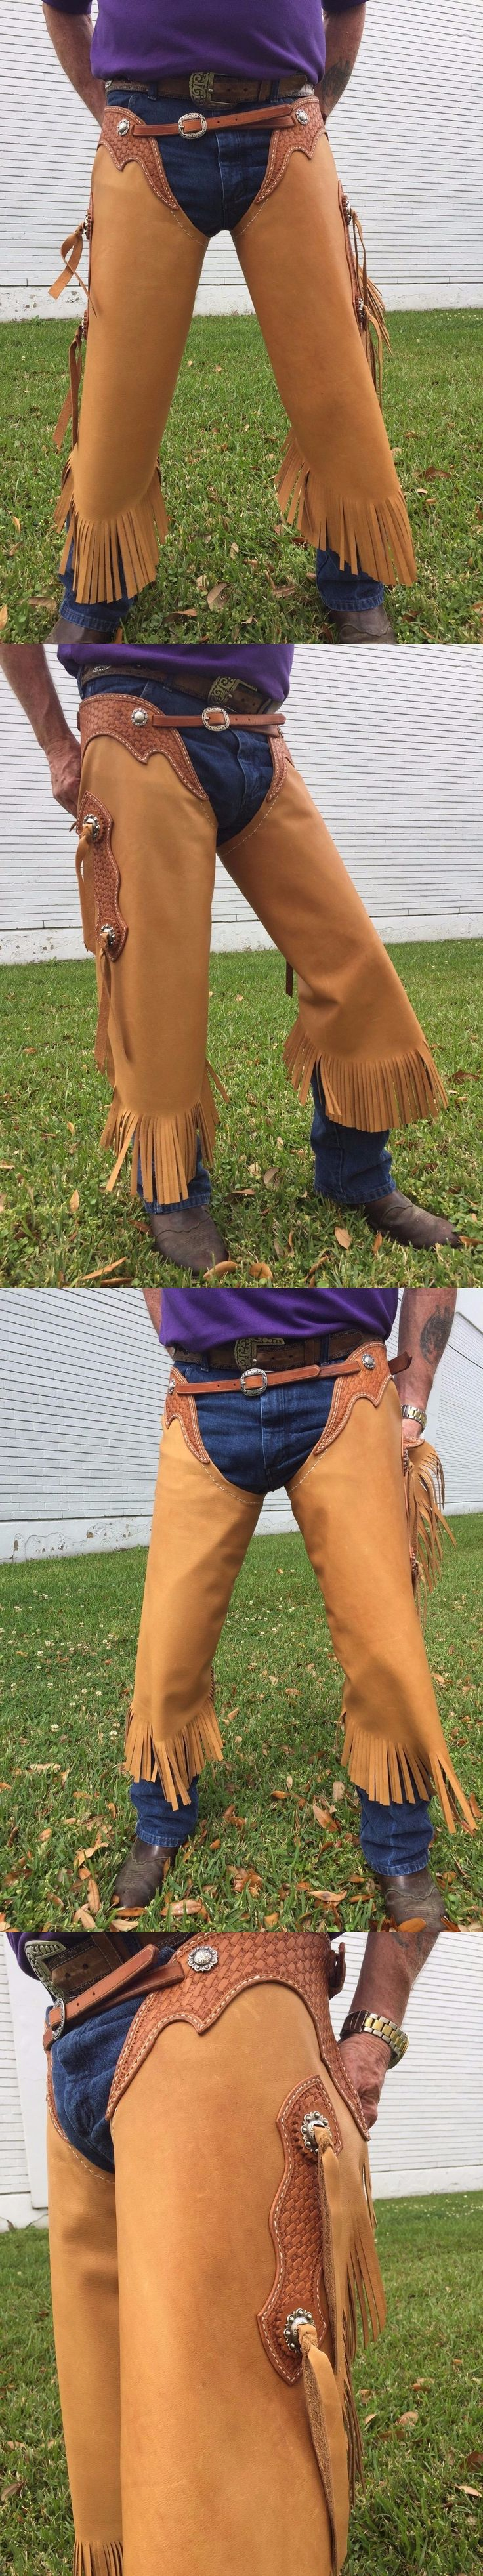 Western Chaps Full Chaps 183358: Hand Made Western Chinks -> BUY IT NOW ONLY: $185 on eBay!